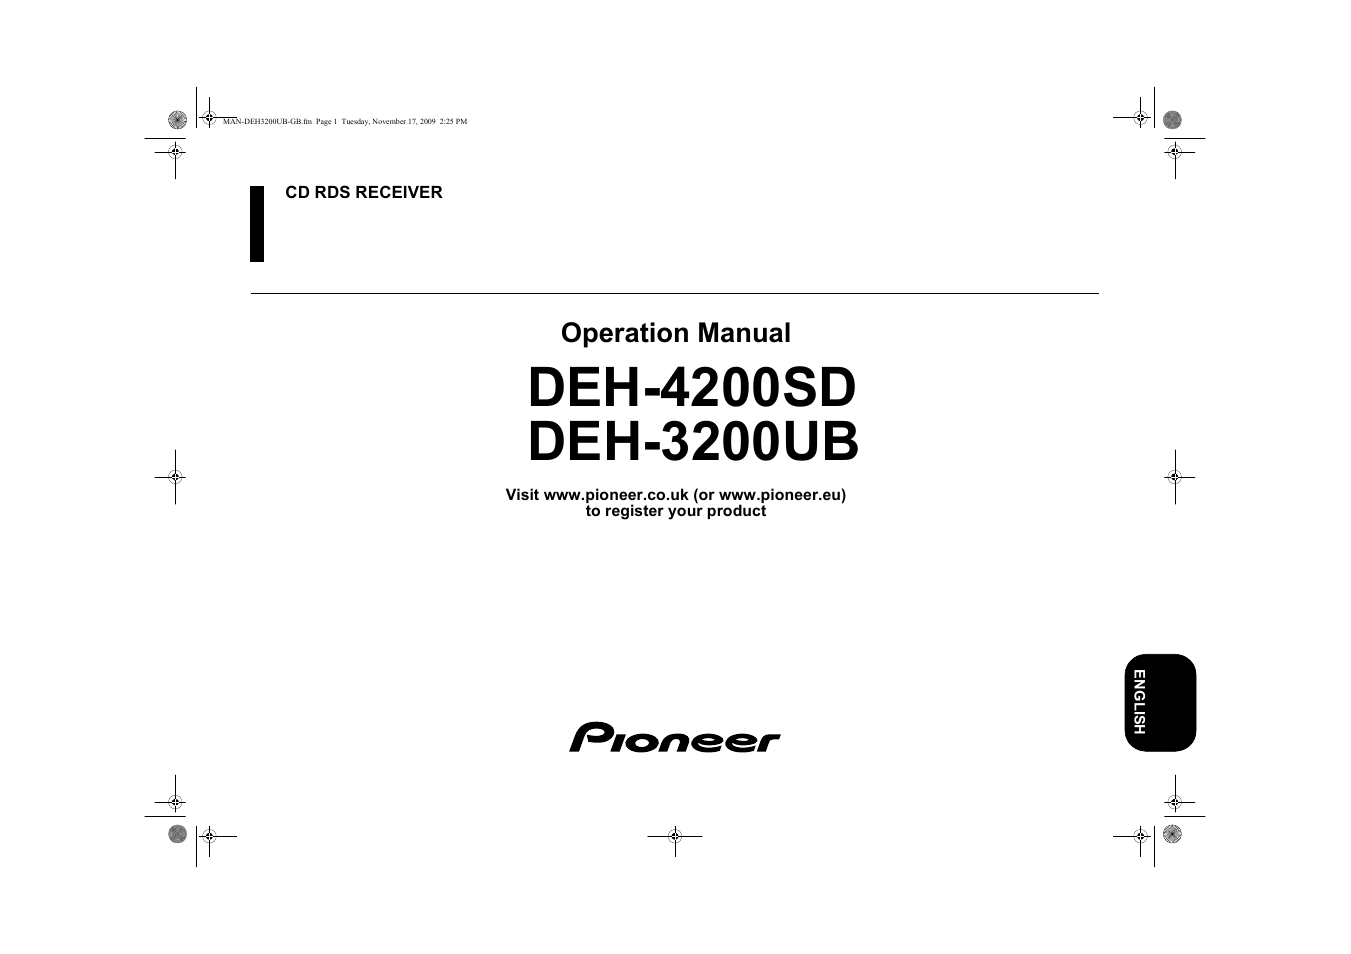 pioneer deh 3200 wiring diagram wiring diagram libraries pioneer deh 3200ub user manual 28 pages also for deh 4200sdpioneer deh 3200 wiring diagram